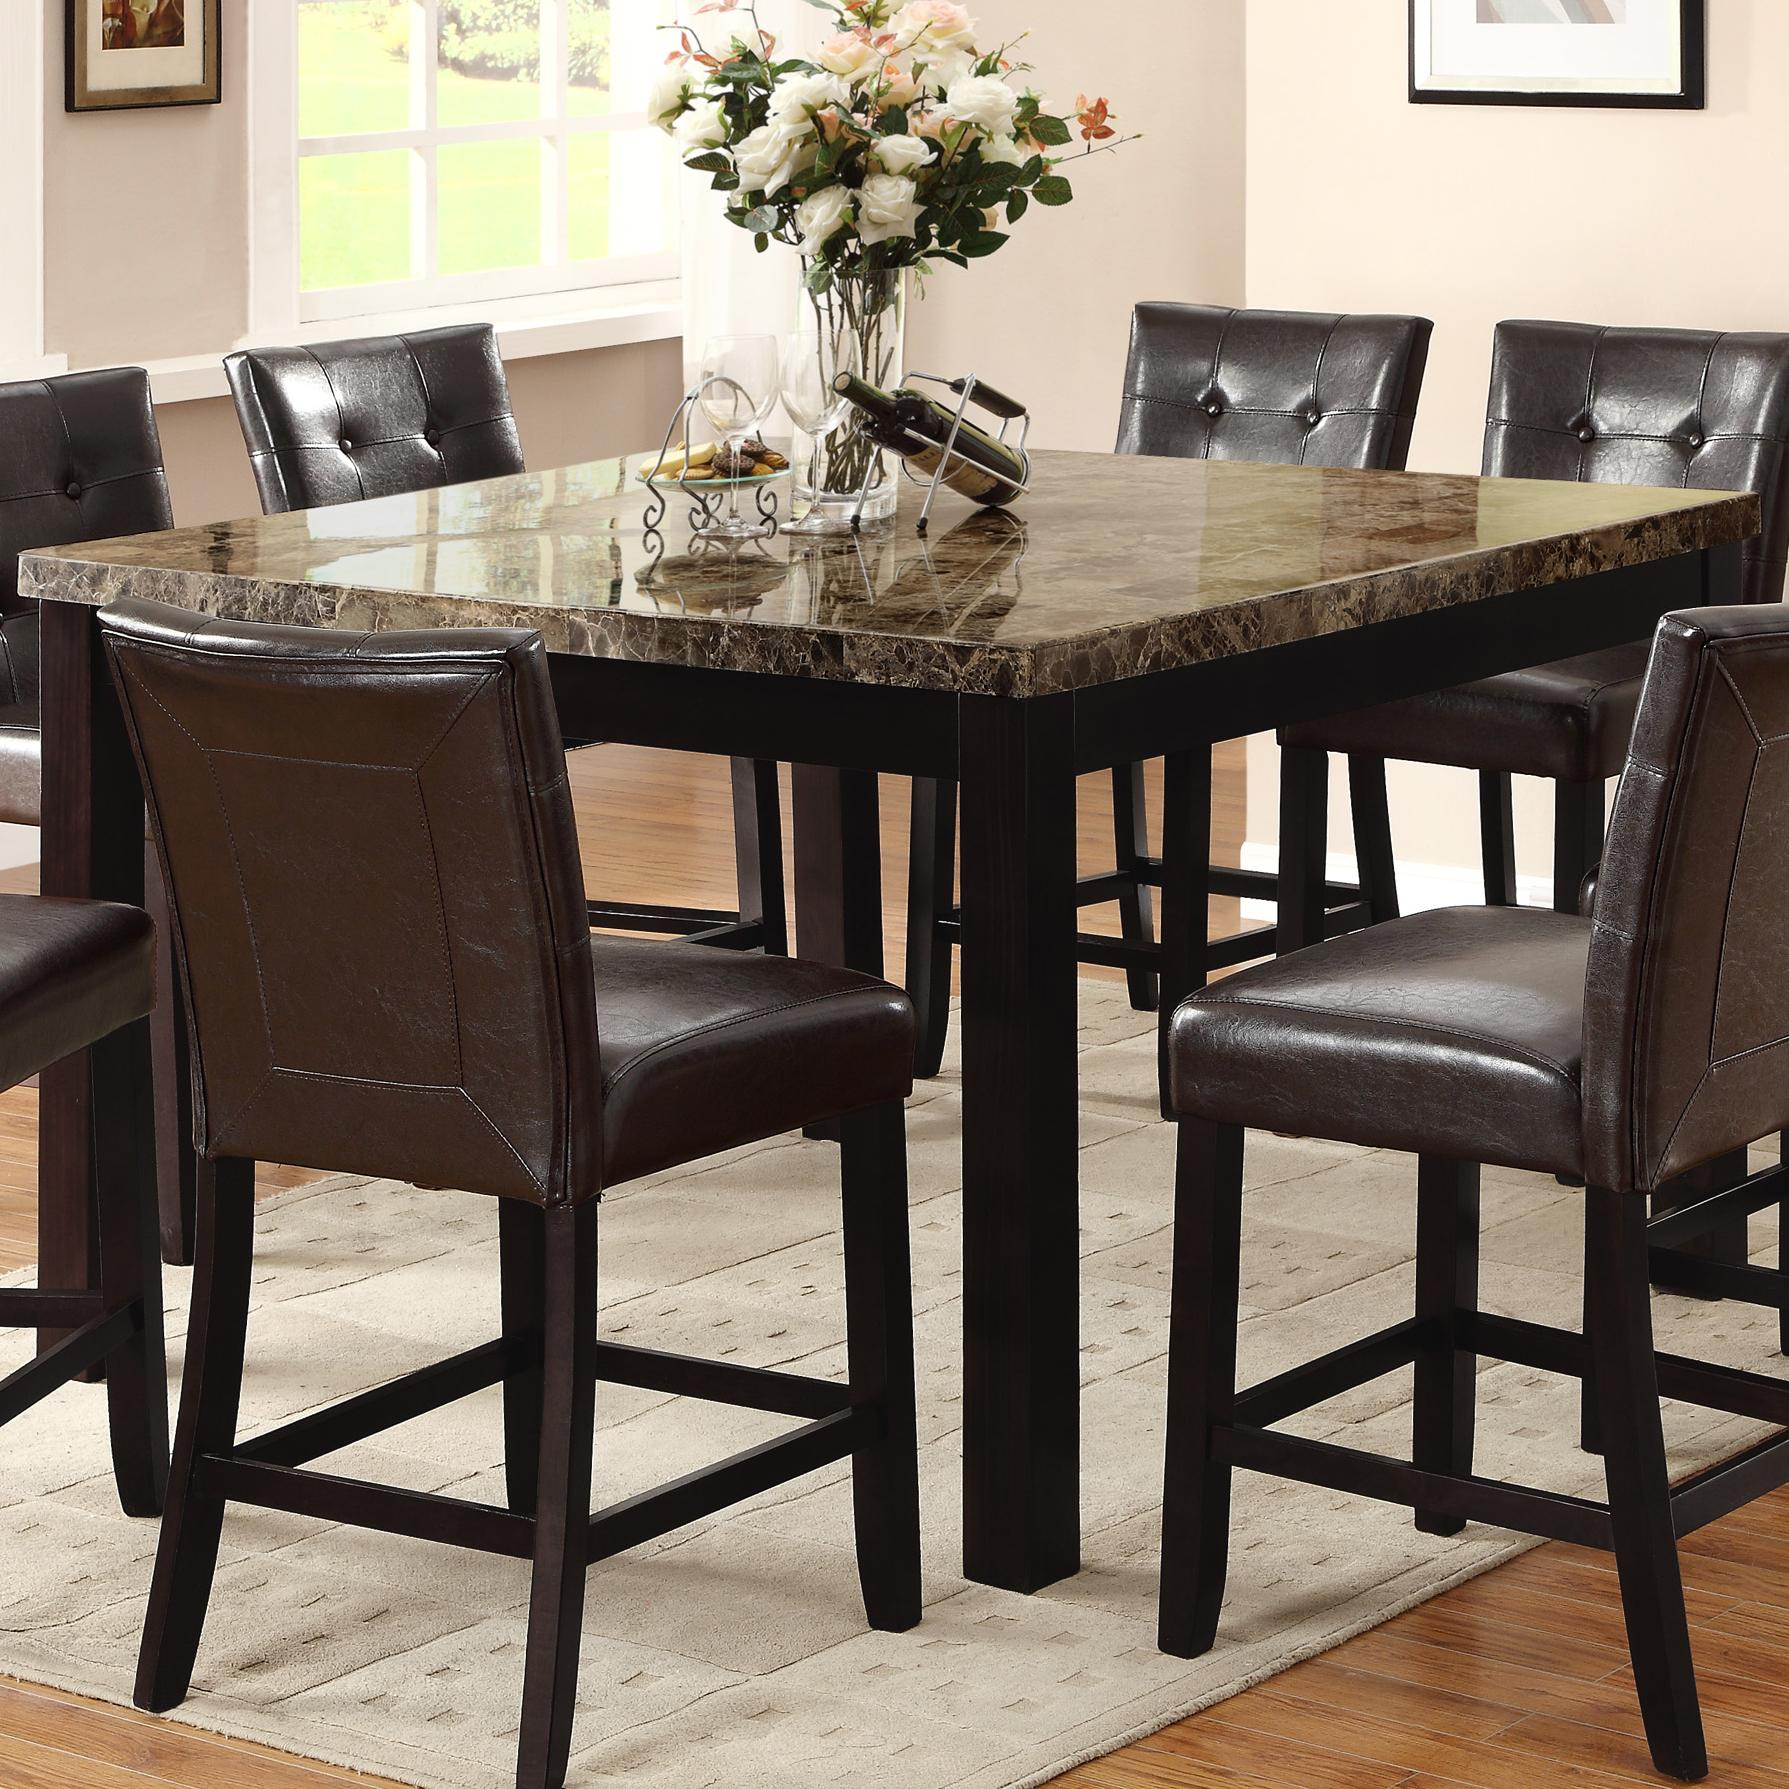 crown mark bruce 2767t 5454 square counter height table with faux marble top dunk bright. Black Bedroom Furniture Sets. Home Design Ideas